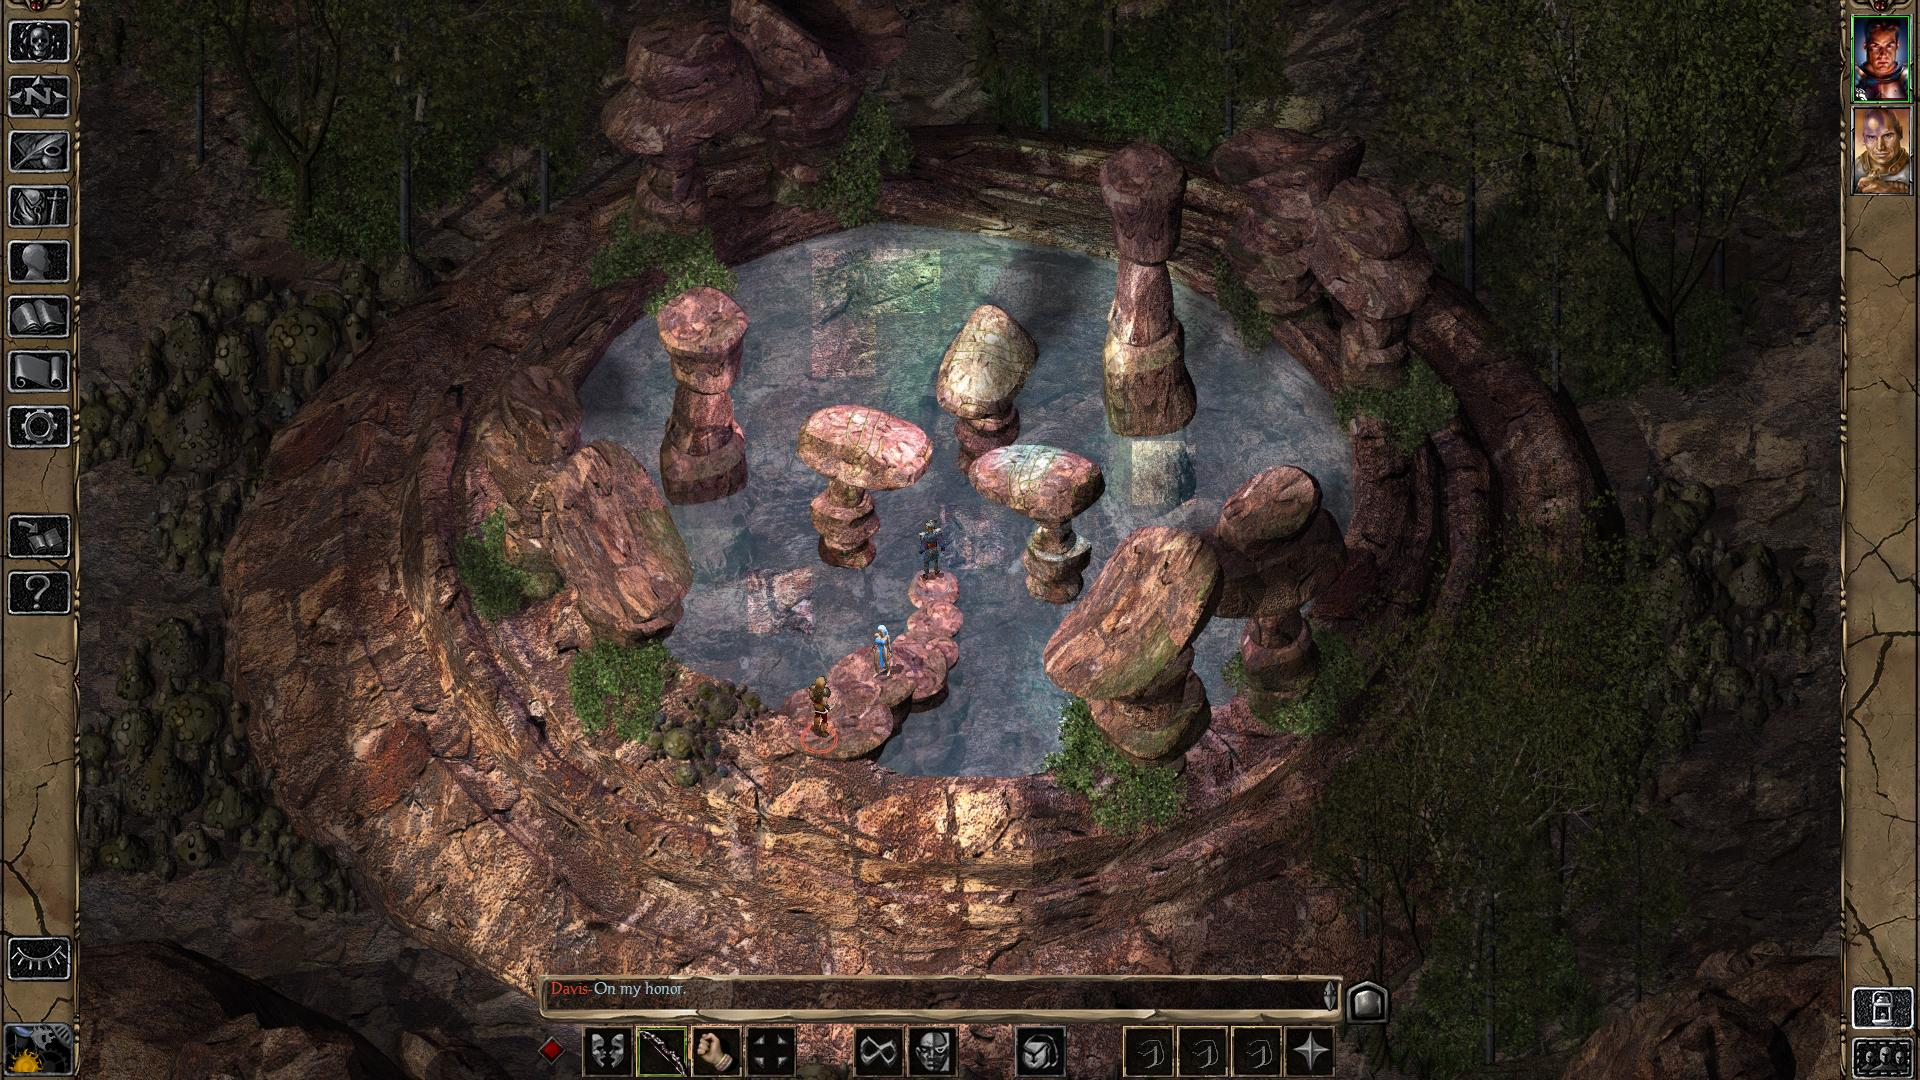 Baldur's Gate 2: Enhanced Edition PC and Mac Release Date Confirmed, First Gameplay Trailer Now Available #28627